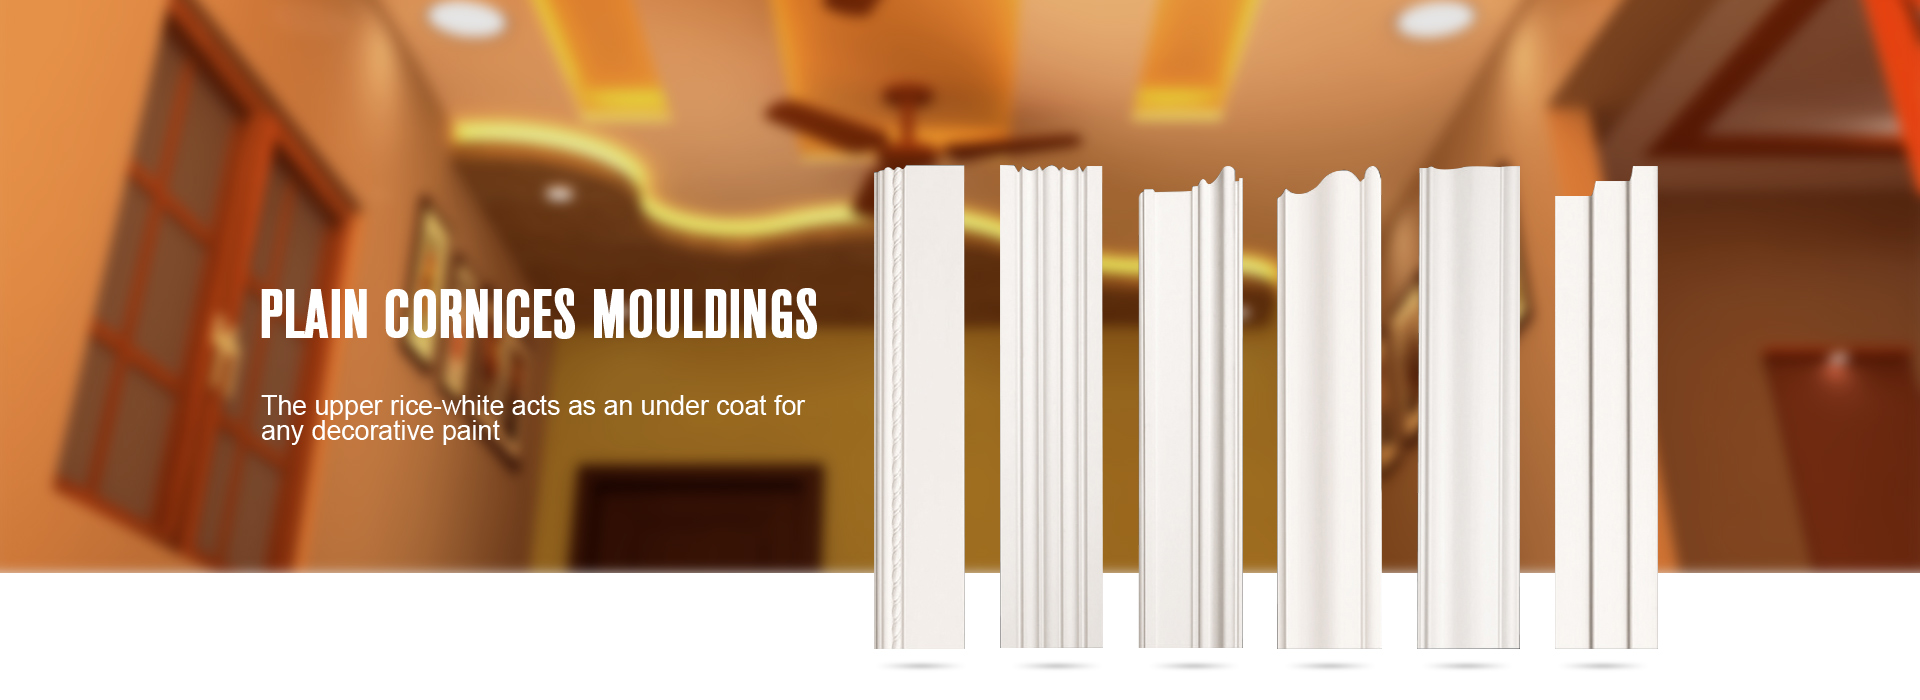 papu-cornices-moldings